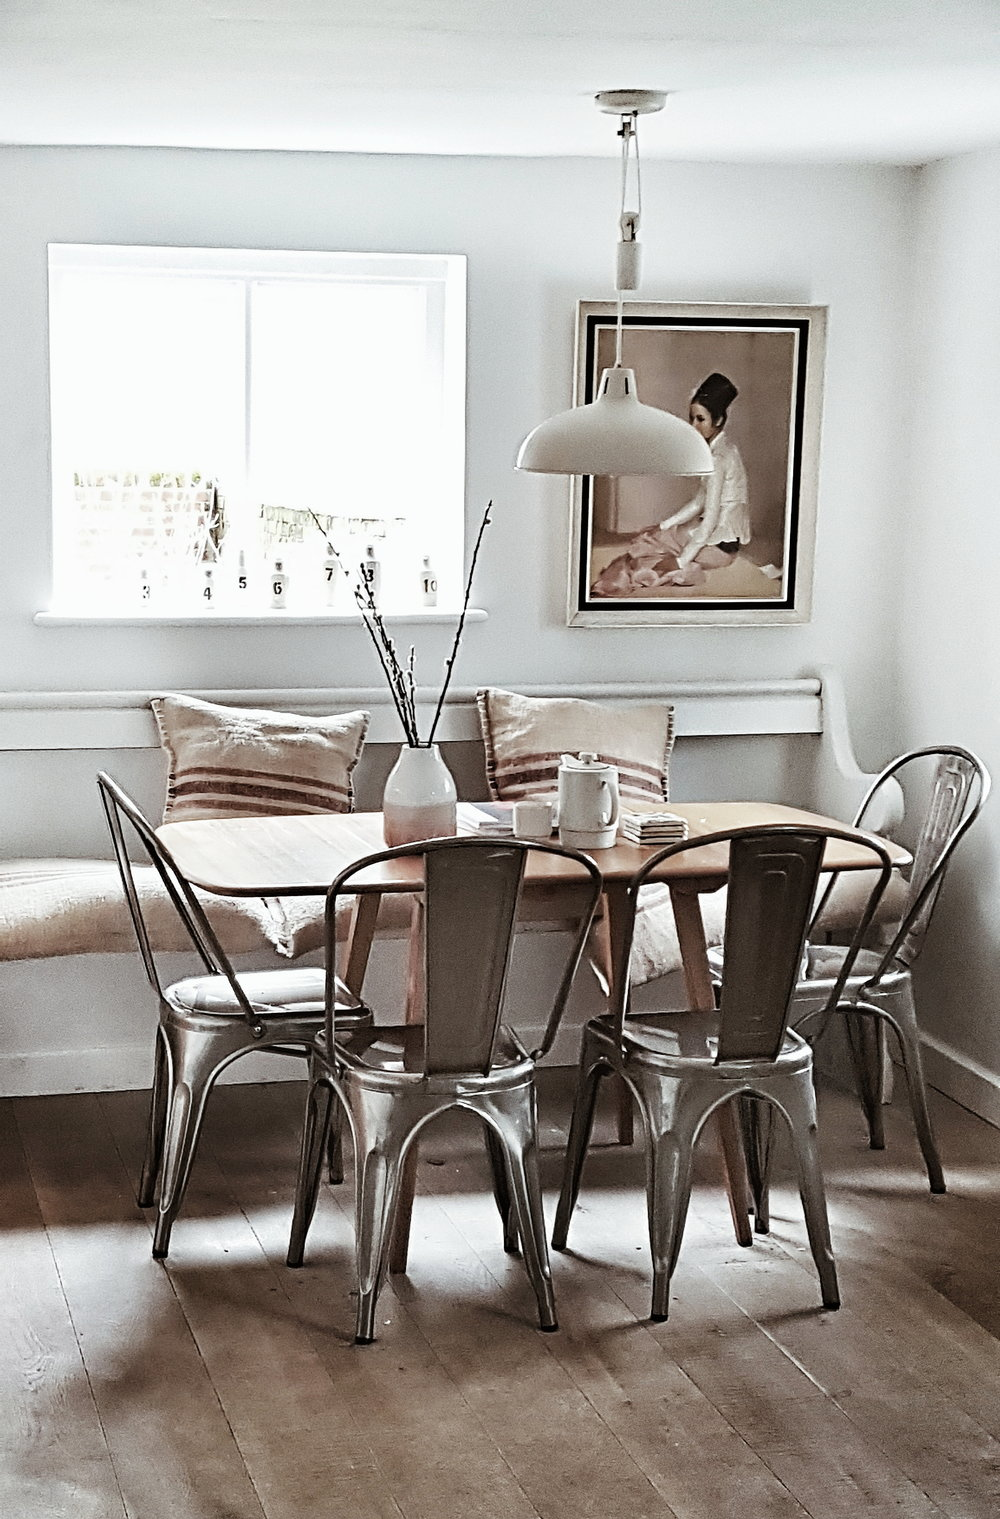 The dining table and chairs which comfortably seat 6-8 for large family breakfasts, lunches and dinners